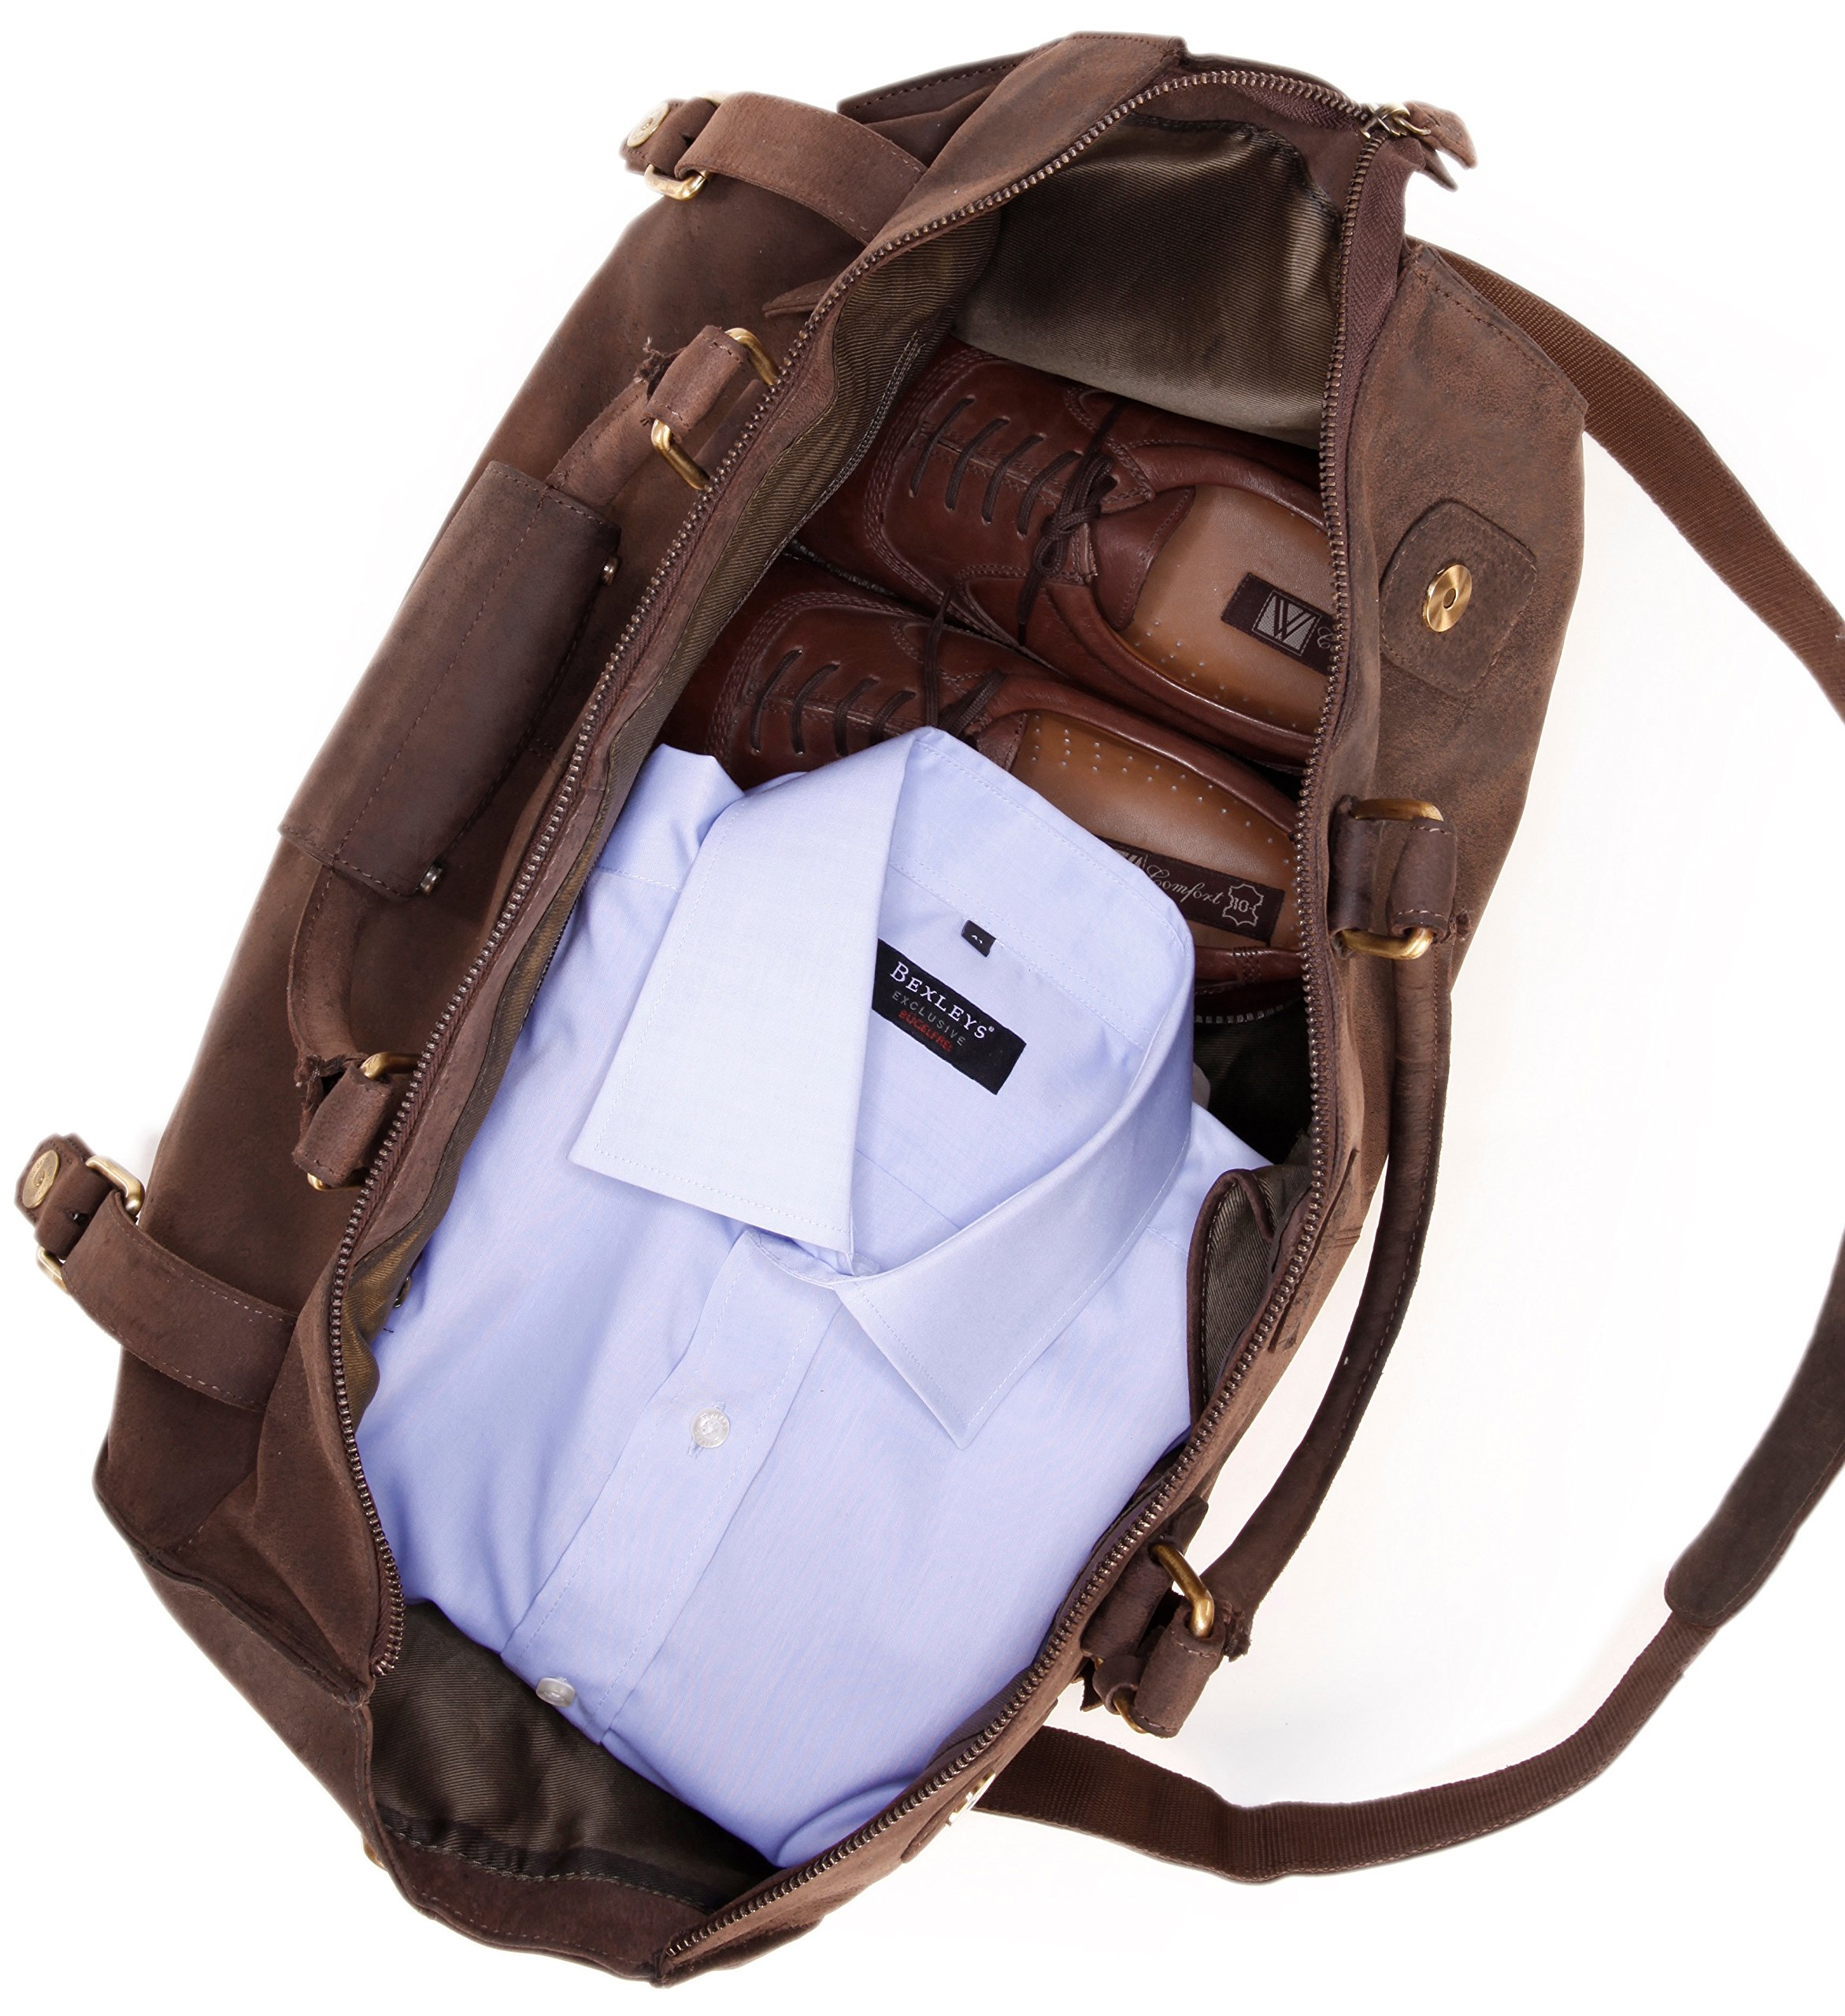 LEABAGS Durham genuine buffalo leather duffle bag in vintage style - Nutmeg by LEABAGS (Image #8)